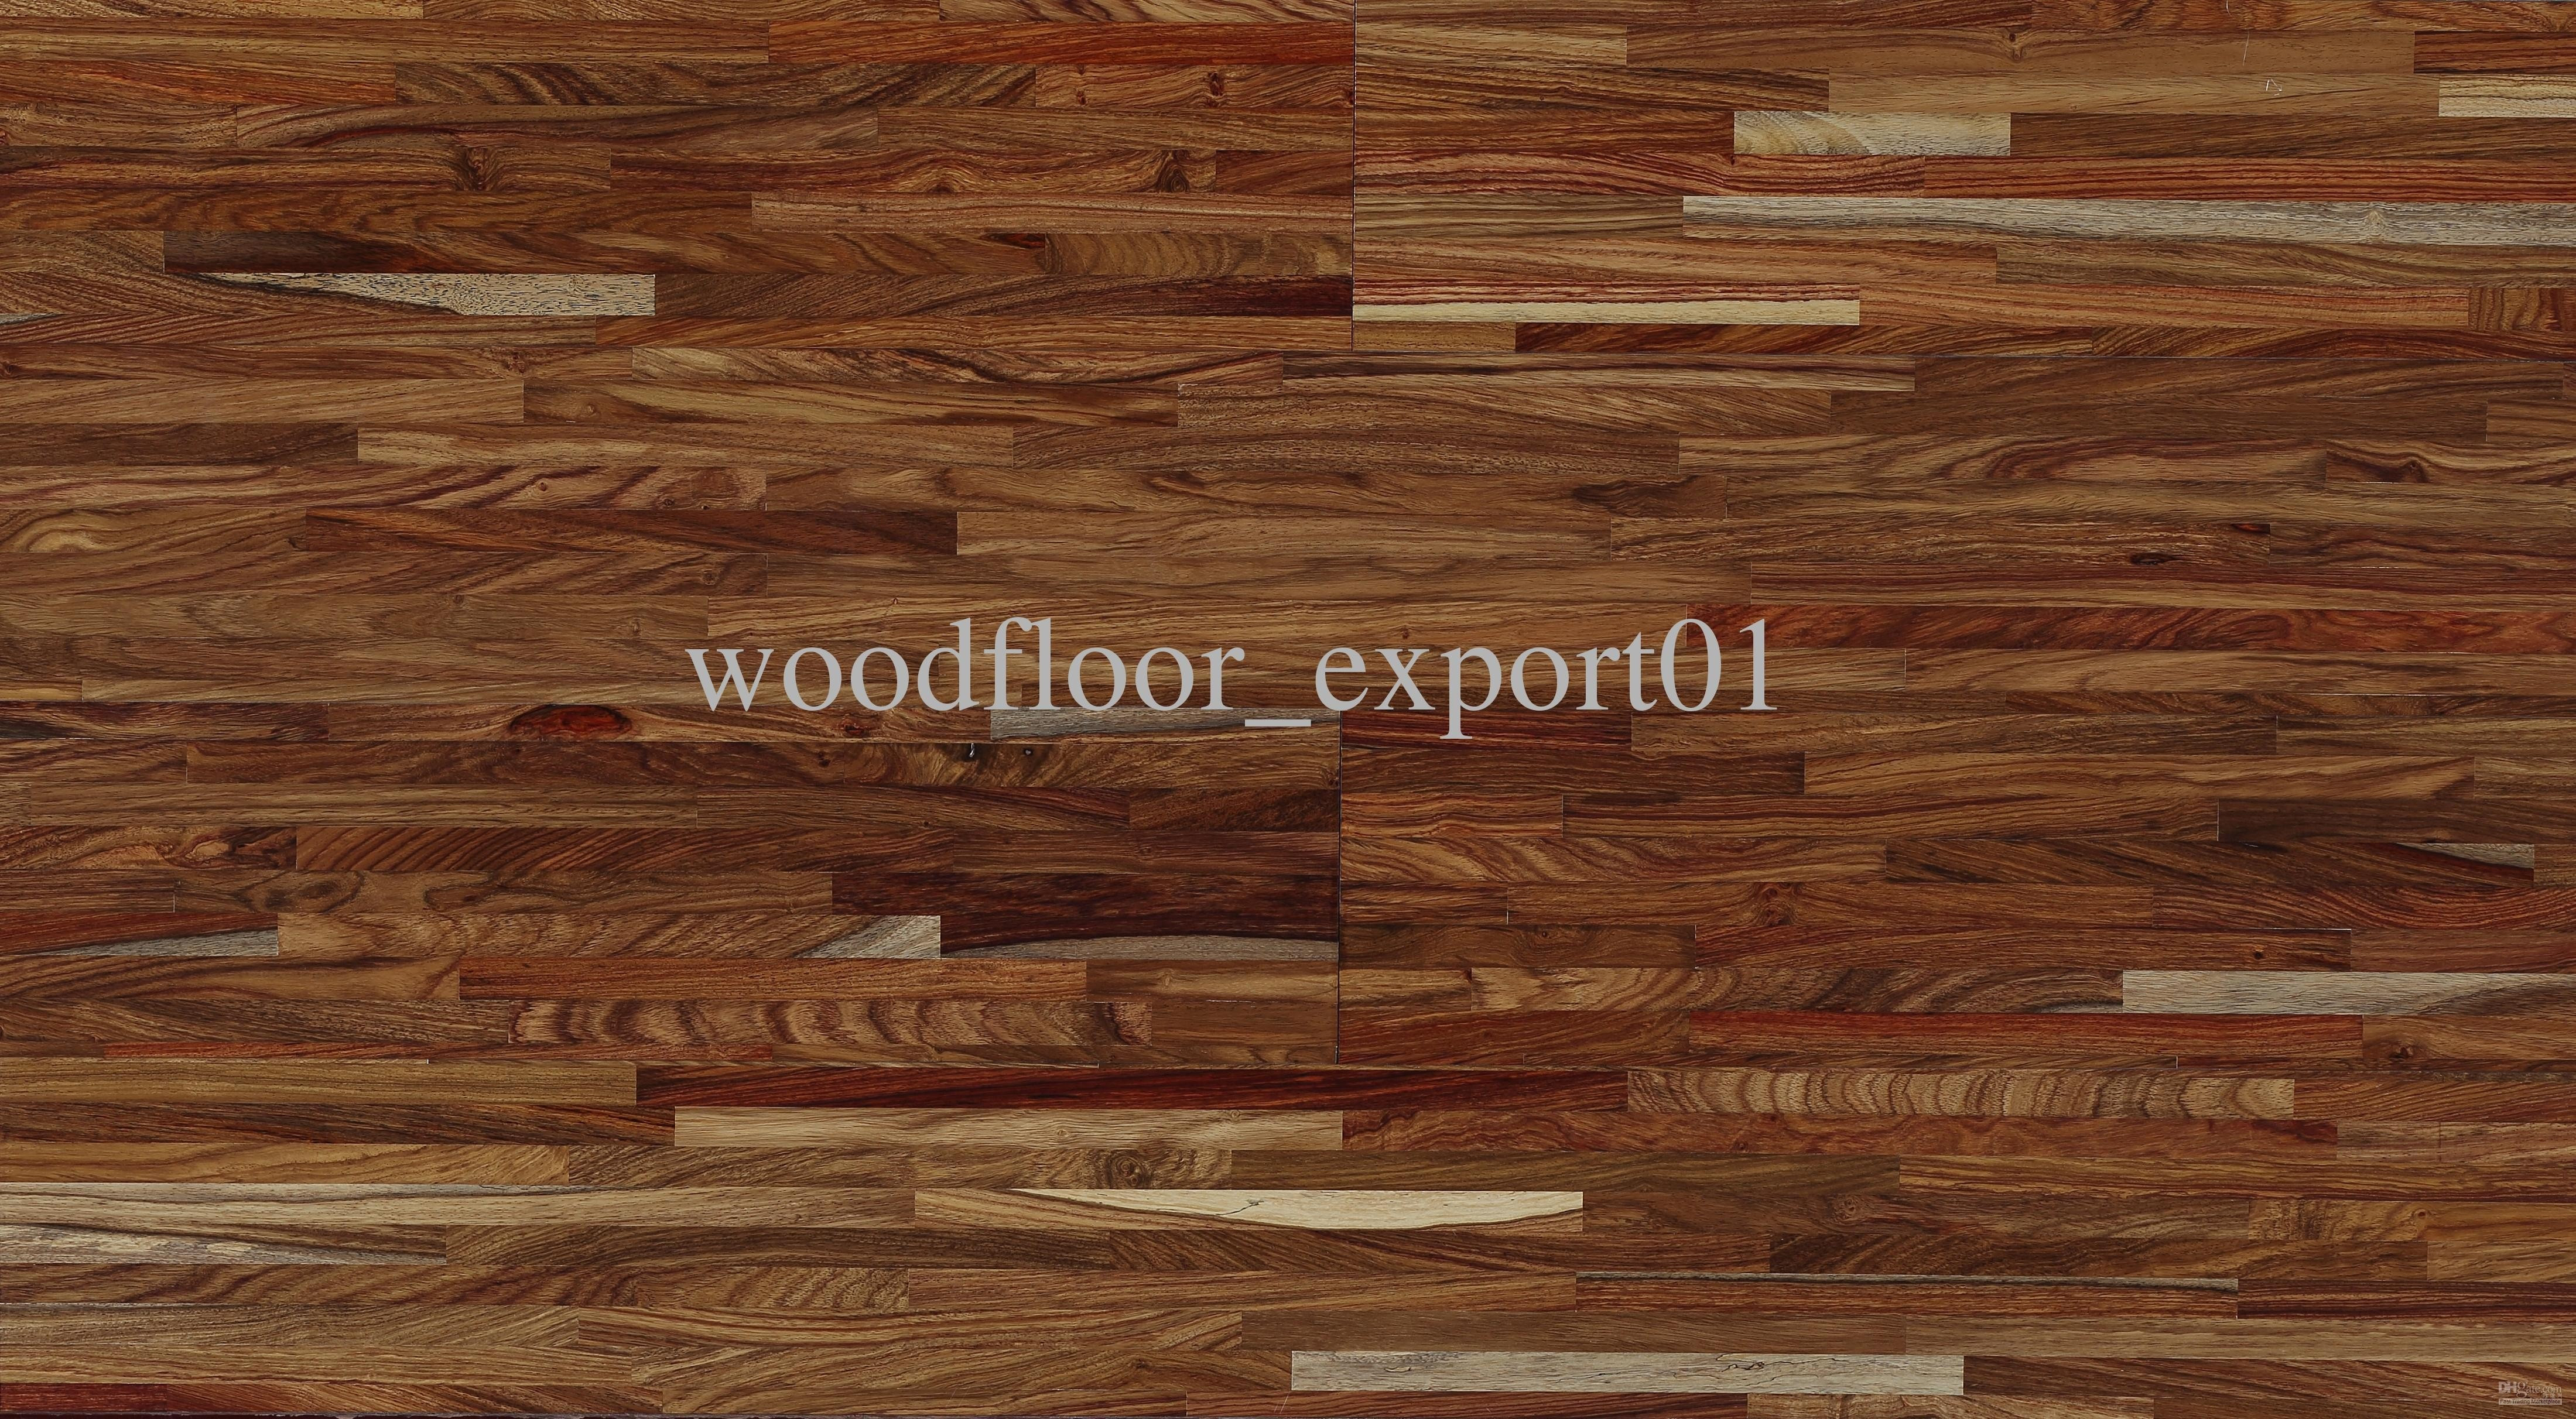 Hardwood Floor Stain Samples Of Premier Laminate Flooring Fresh Piedmont Oak is A Versatile Warm with Premier Laminate Flooring Lovely Flooring Nj Furniture Design Hard Wood Flooring New 0d Grace Place Photos